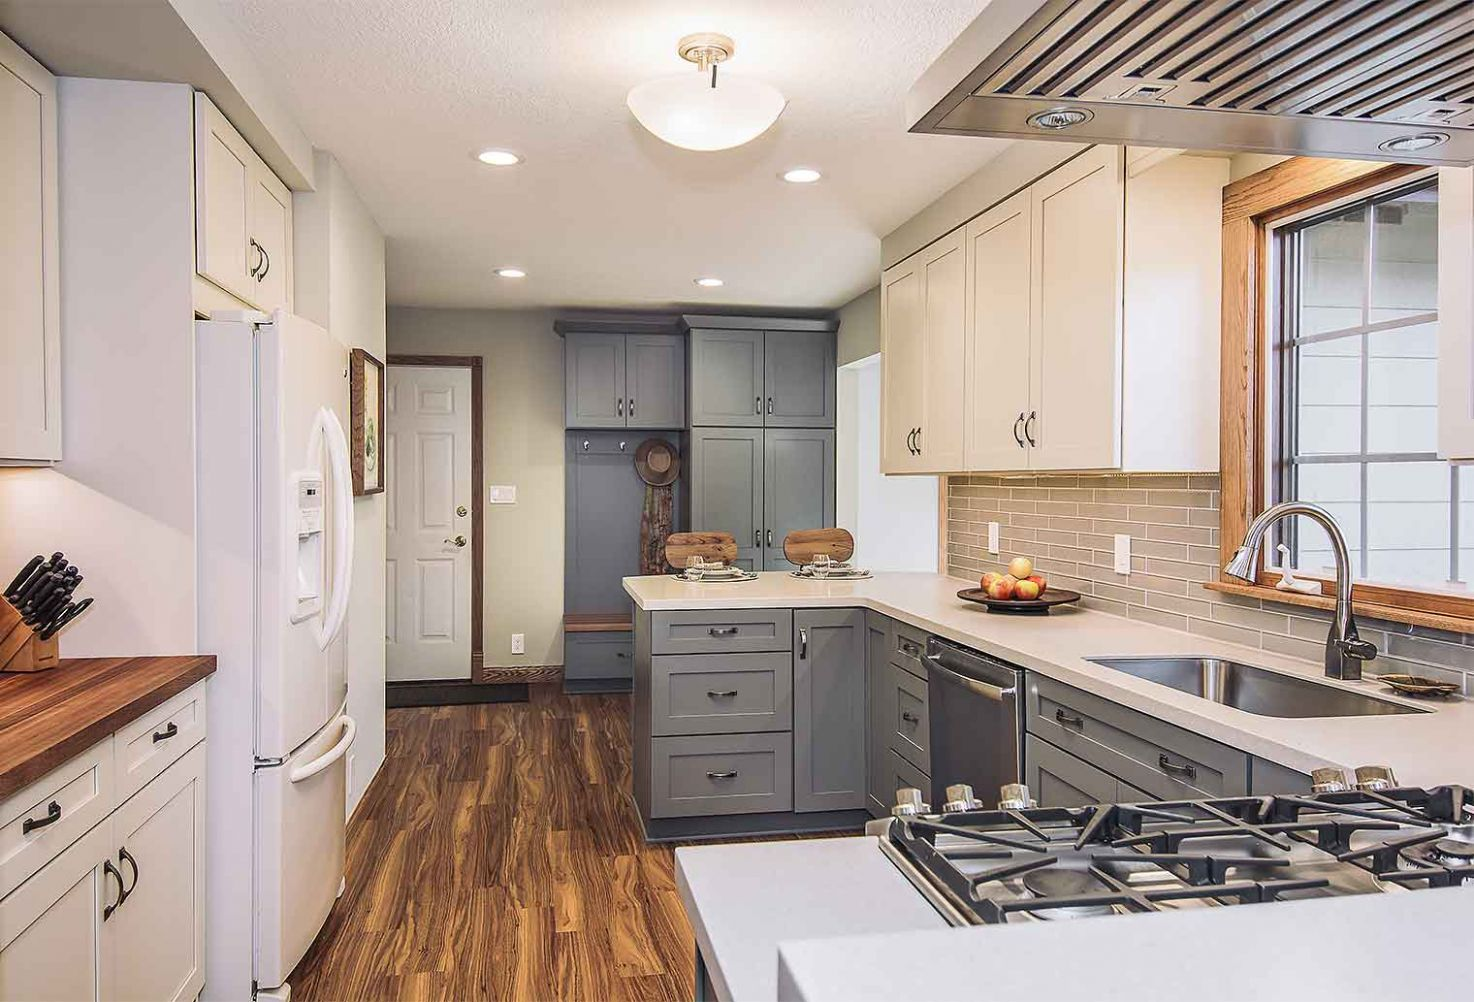 Mid-9s Kitchen Remodel: A Homeowner's Experience - Silent Rivers ...